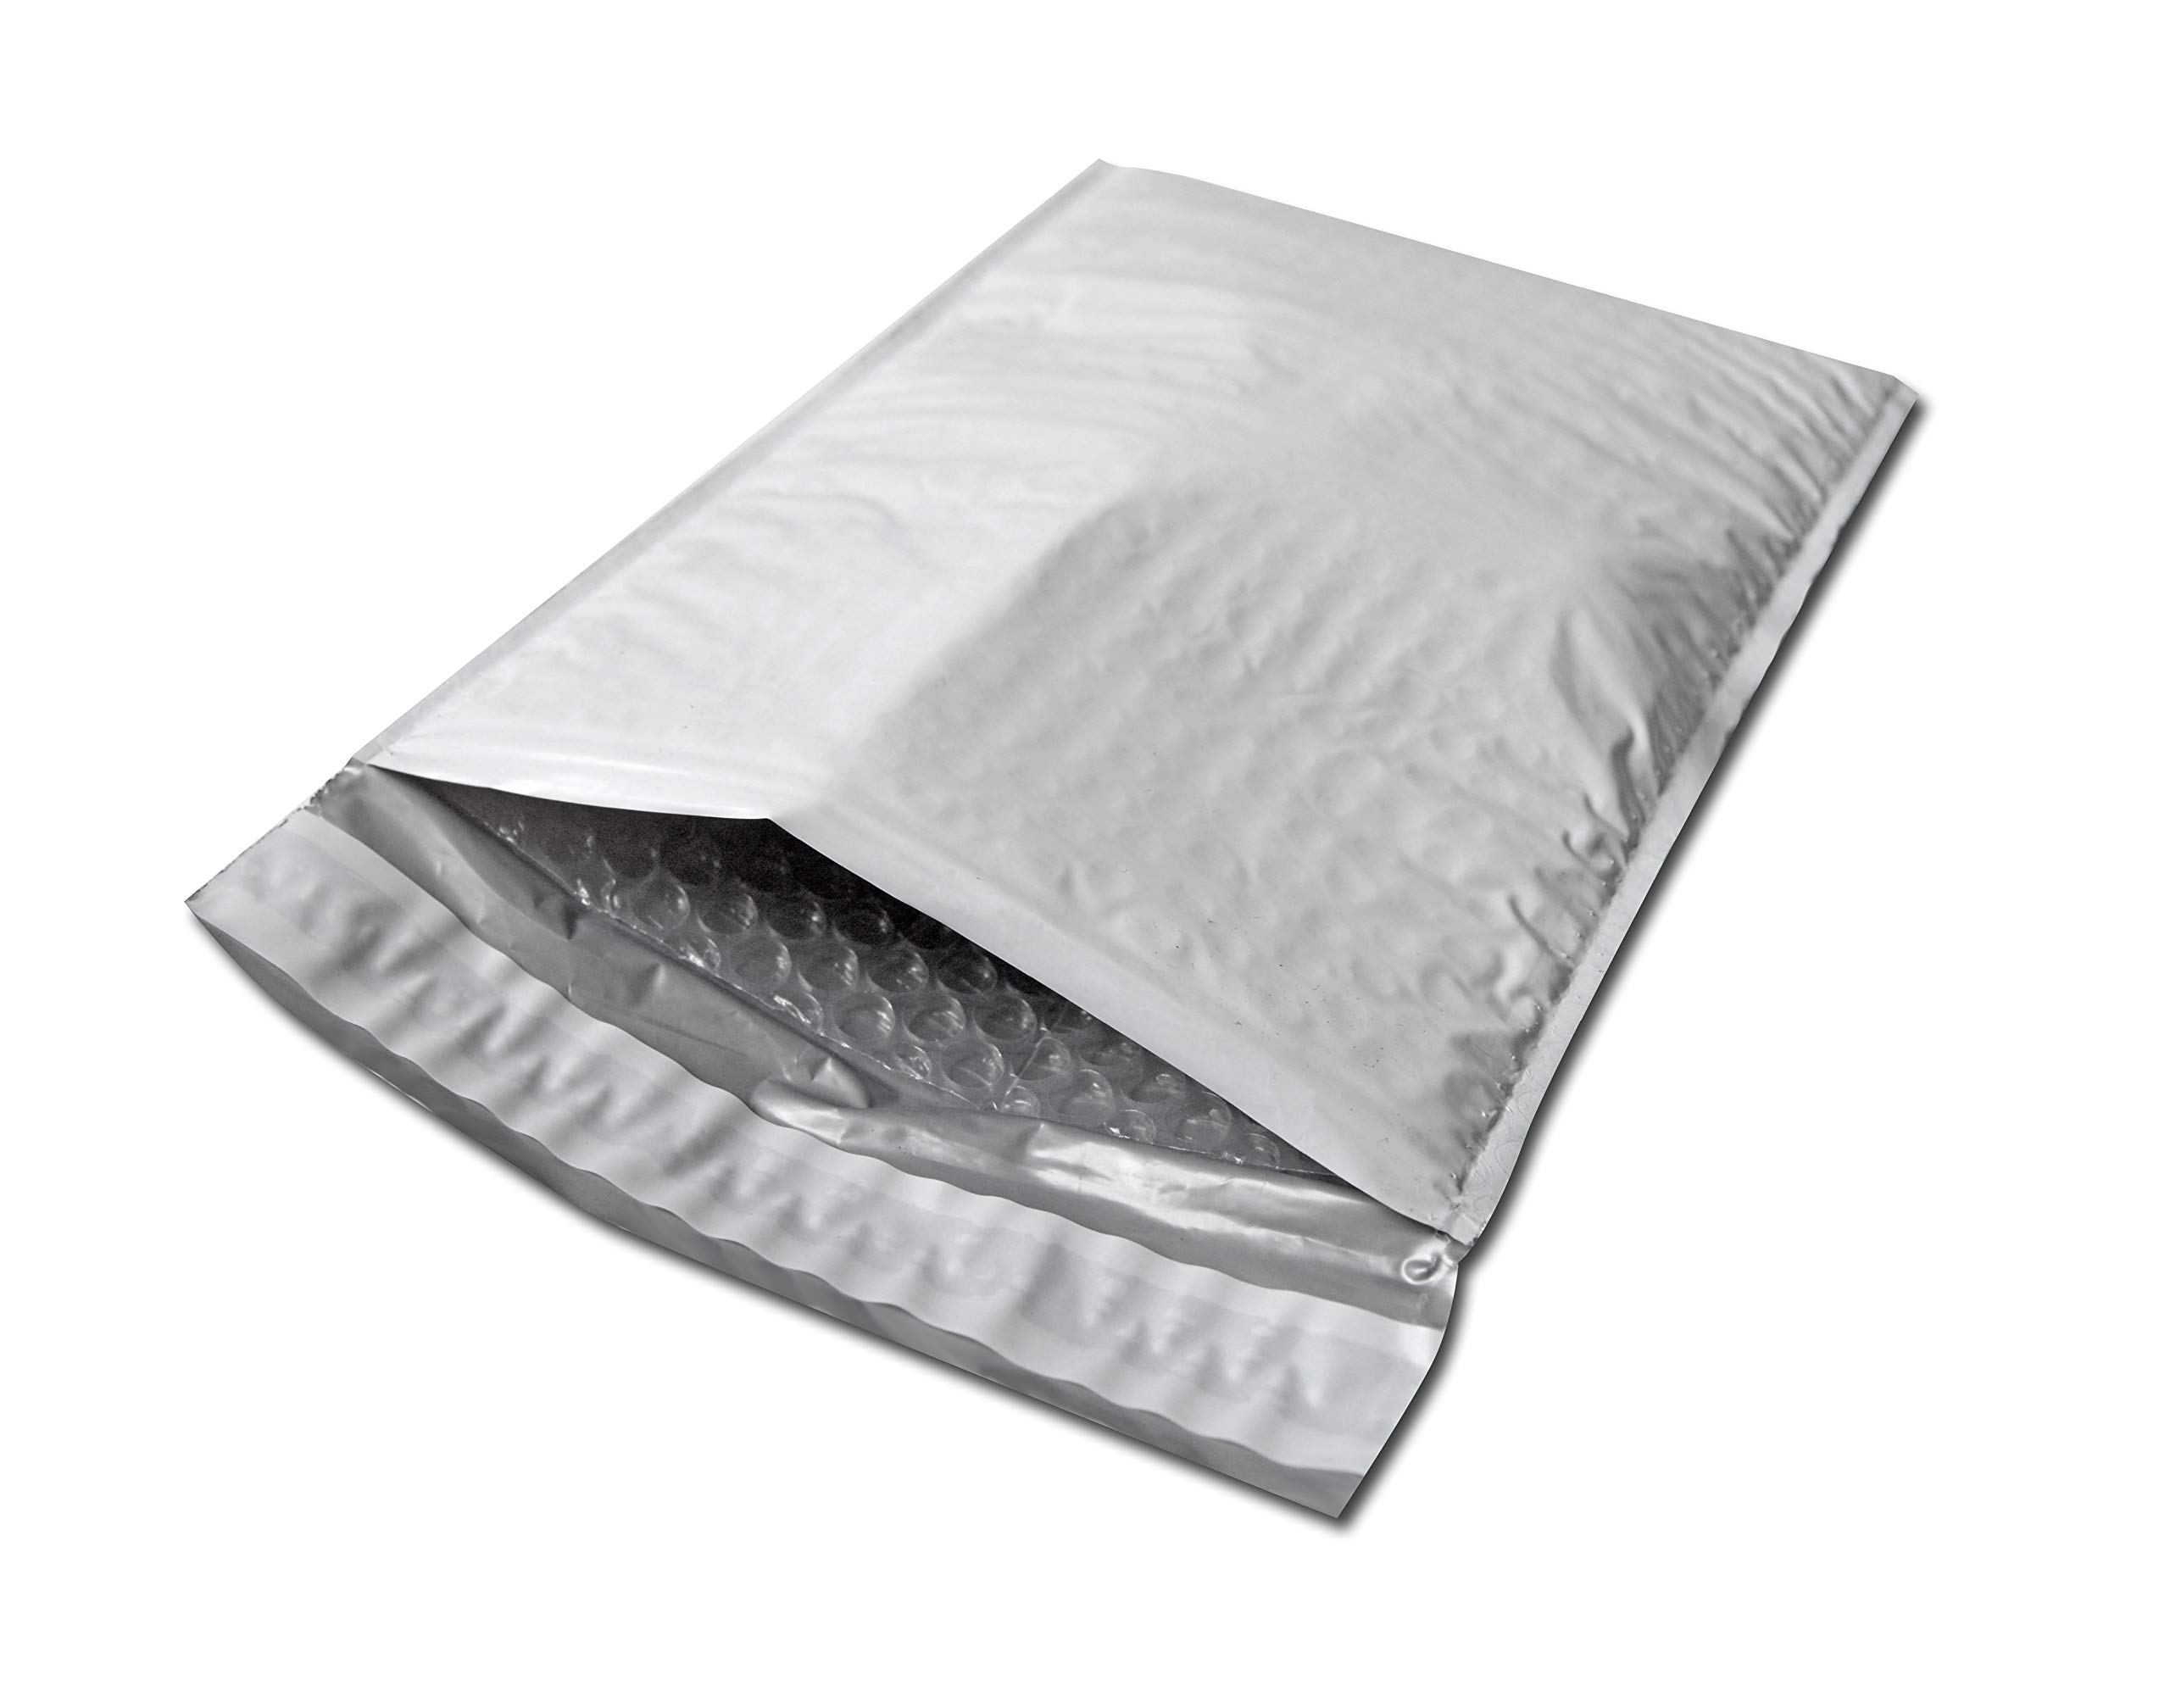 Poly Bubble Mailers Shipping Mailing Padded Envelopes #0 Self Adhesive Bag 6.5'' x 10'' 1000 Bags